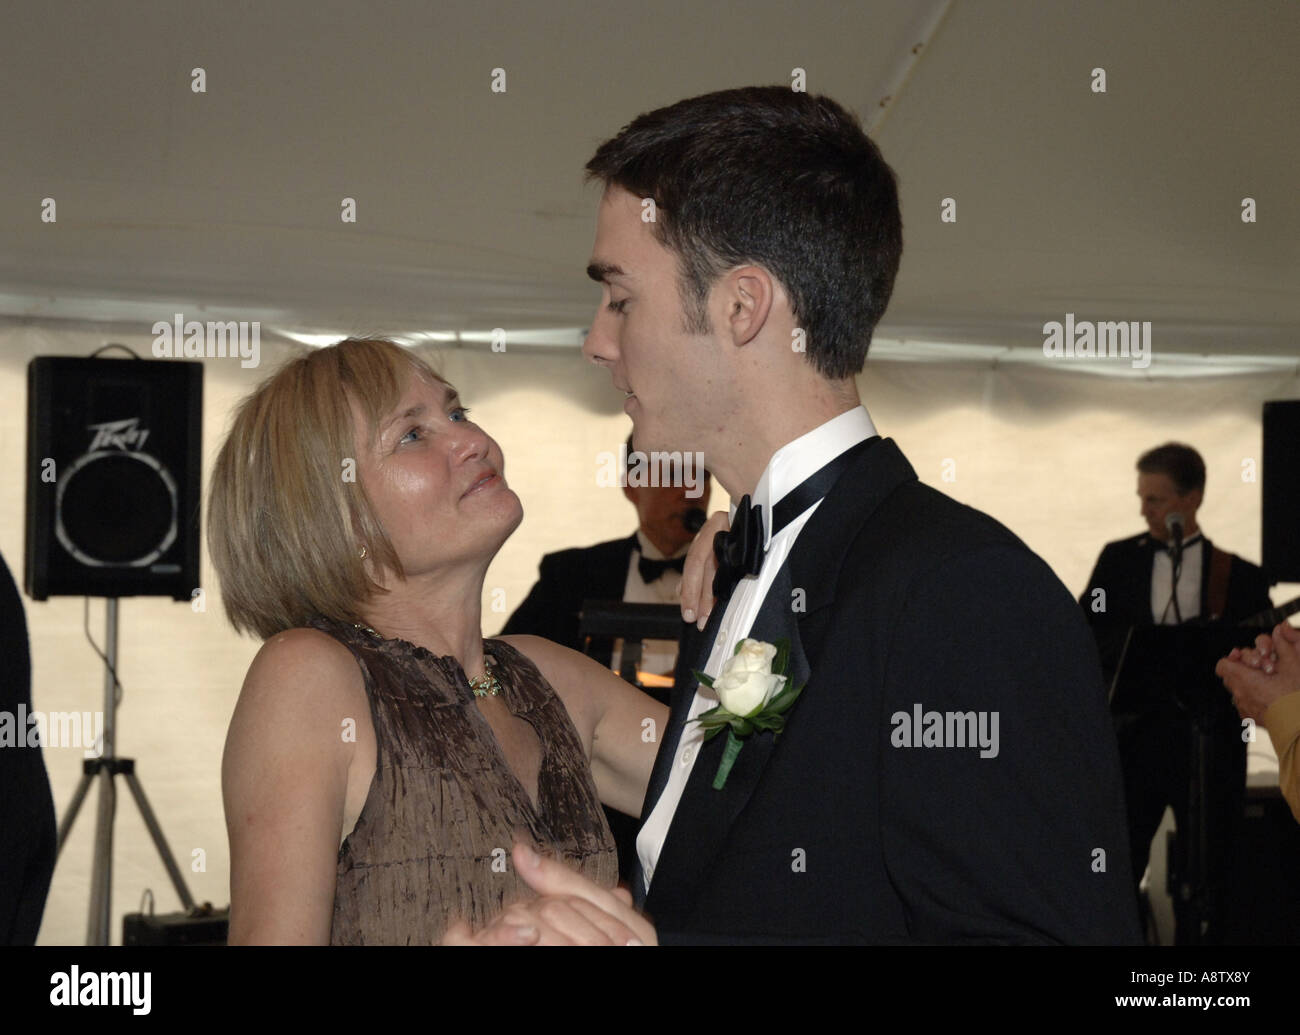 Mother And Son Dance At Wedding Reception She Is Yale School Of